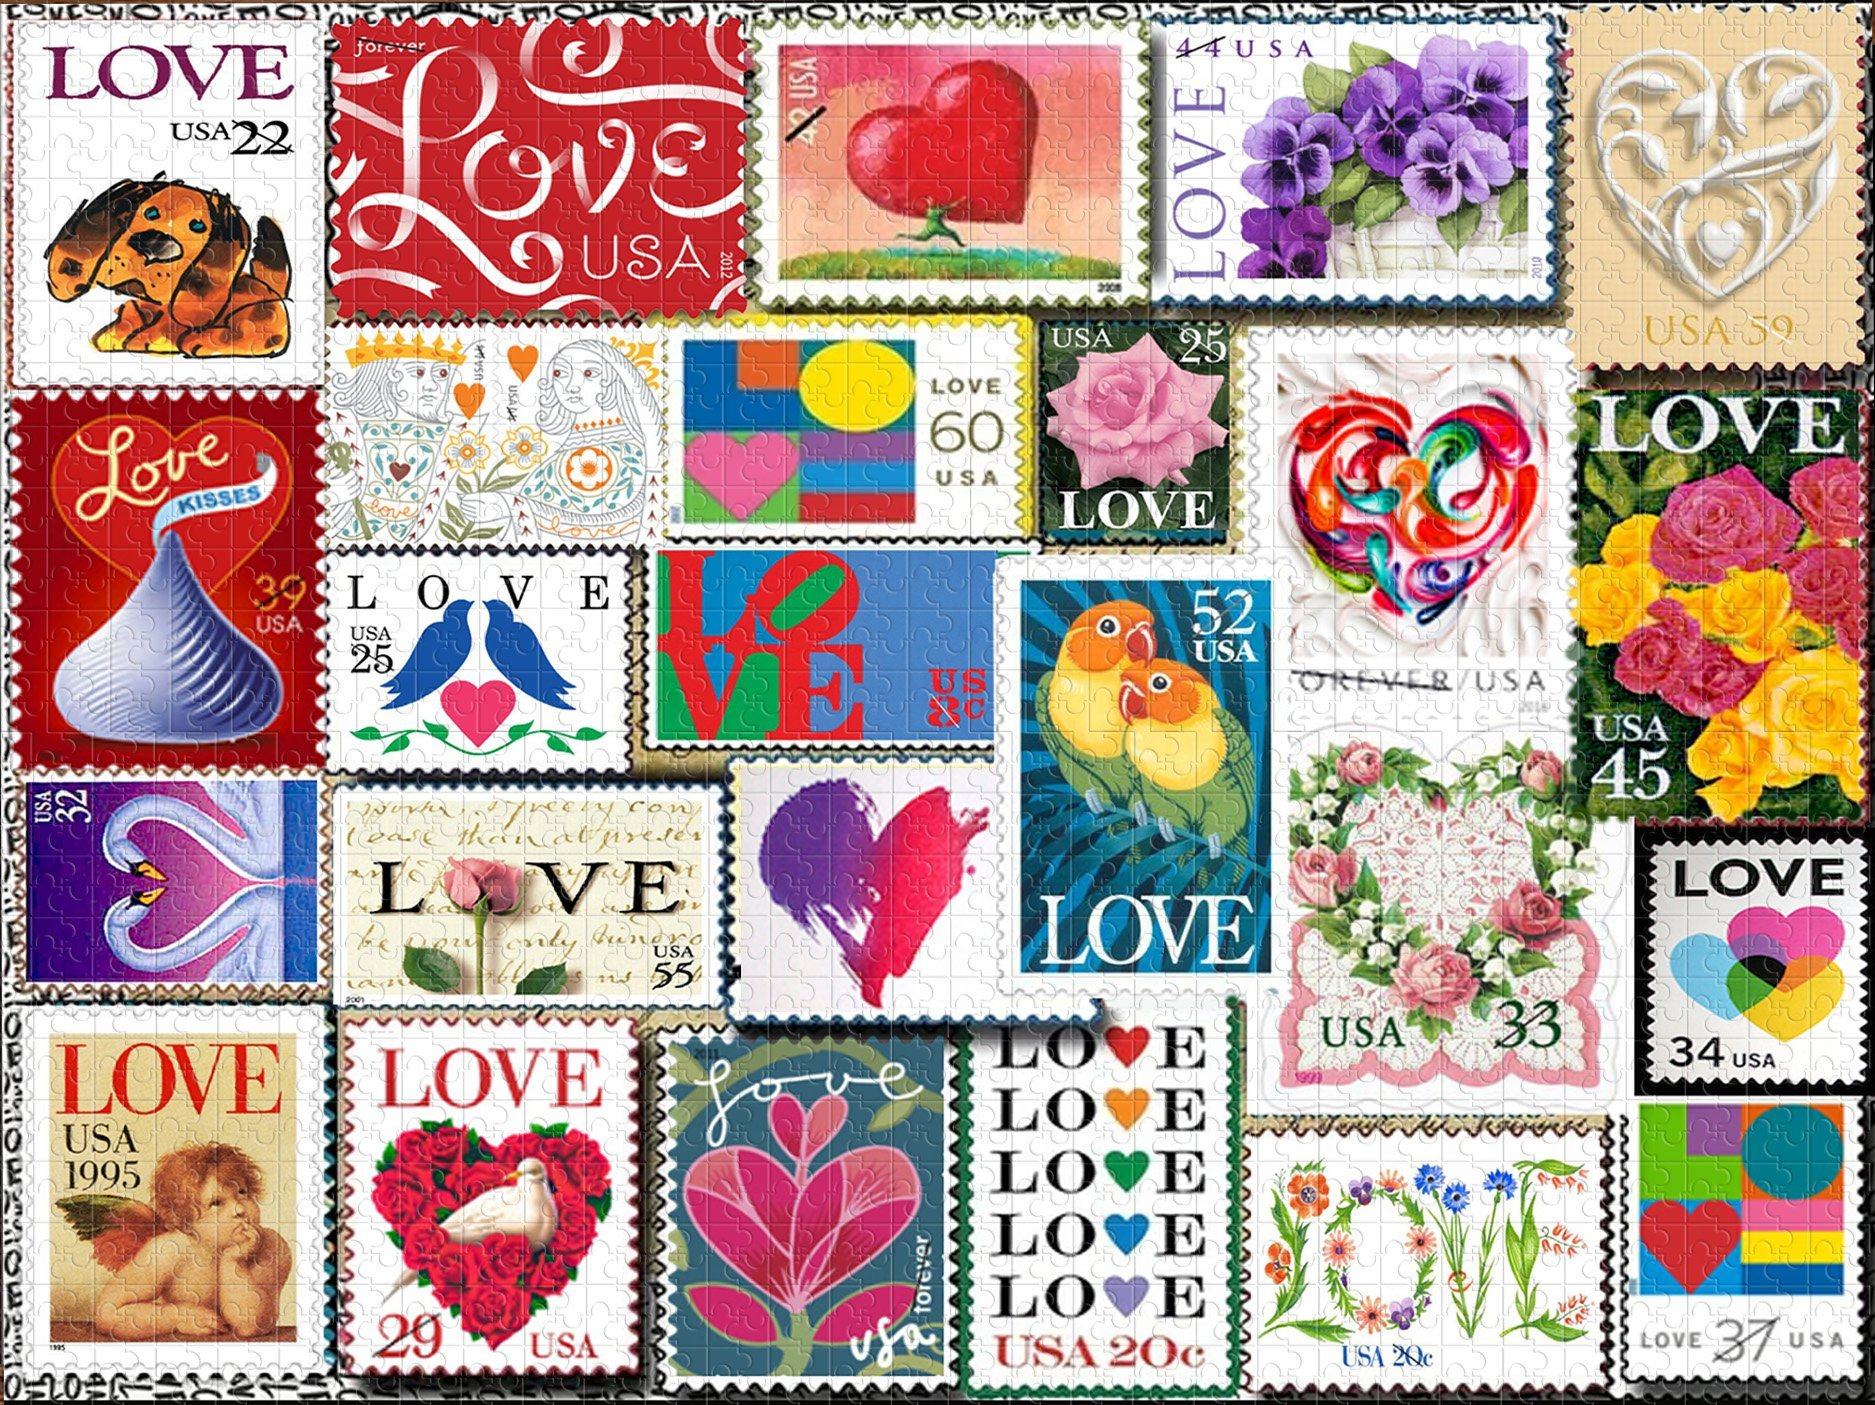 Love Stamps - Puzzle Jigsaw 1000 PCS